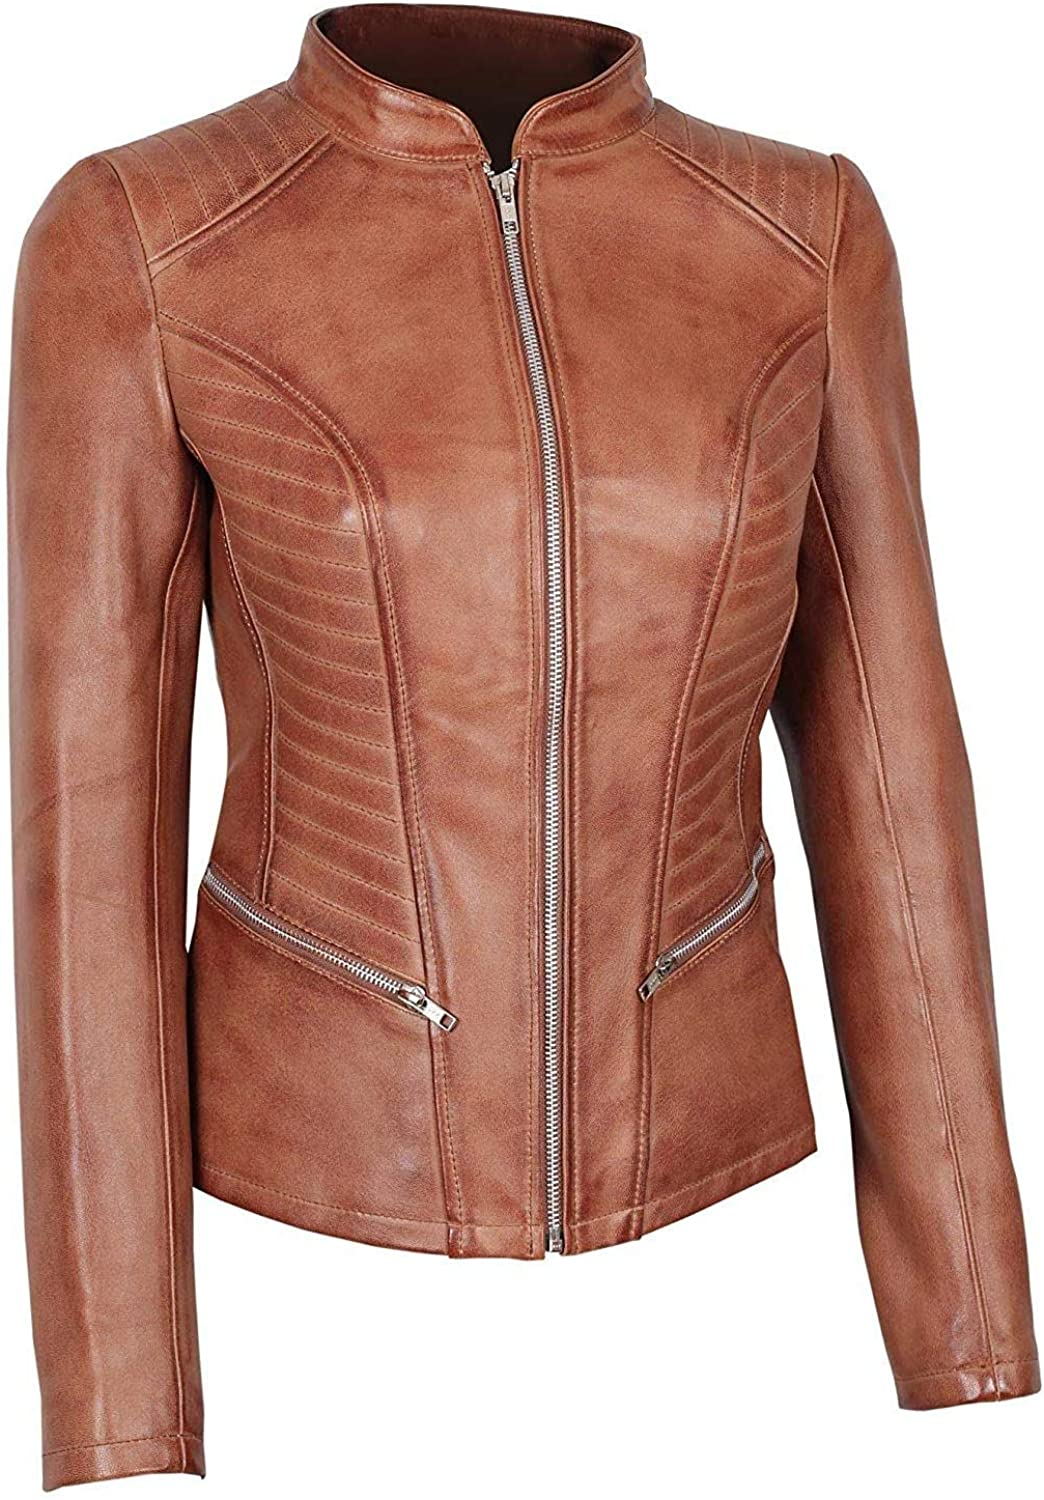 Blingsoul Brown Womens Leather Jacket - Motorcycle Real Lambskin Leather Jackets For Women